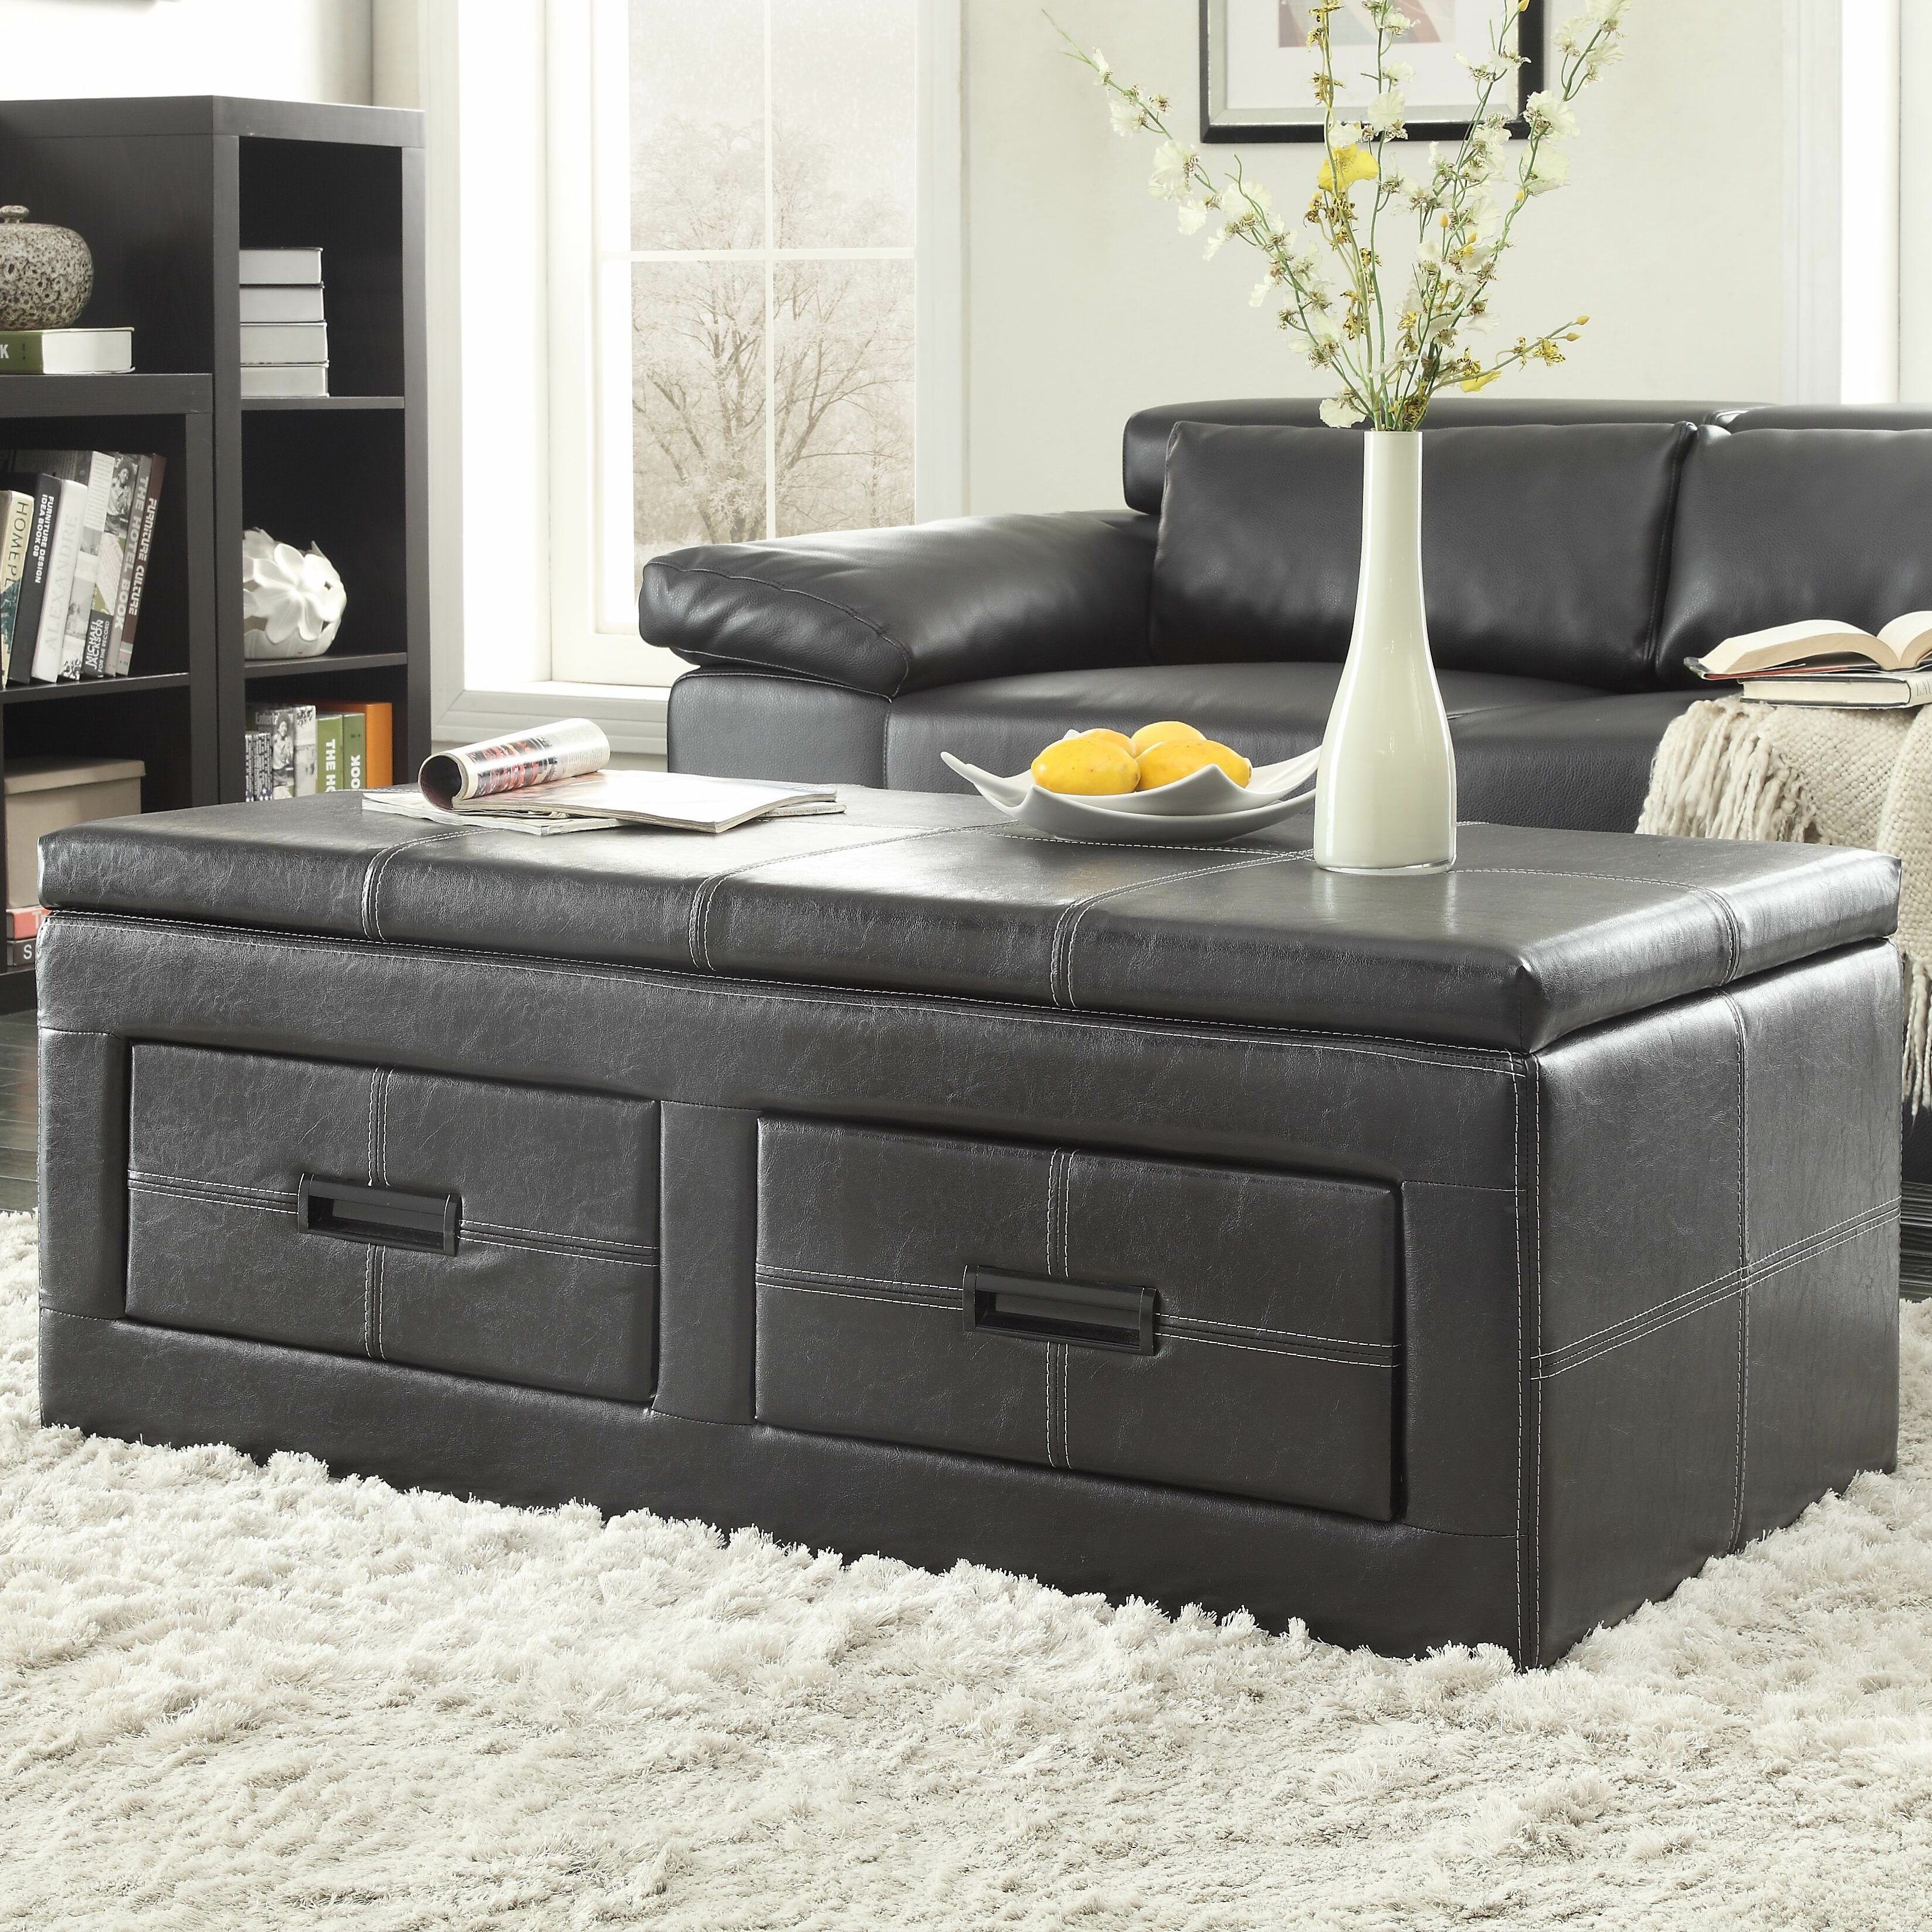 Woodhaven Living Room Furniture Woodhaven Hill Baine Coffee Table With Lift Top Reviews Wayfair